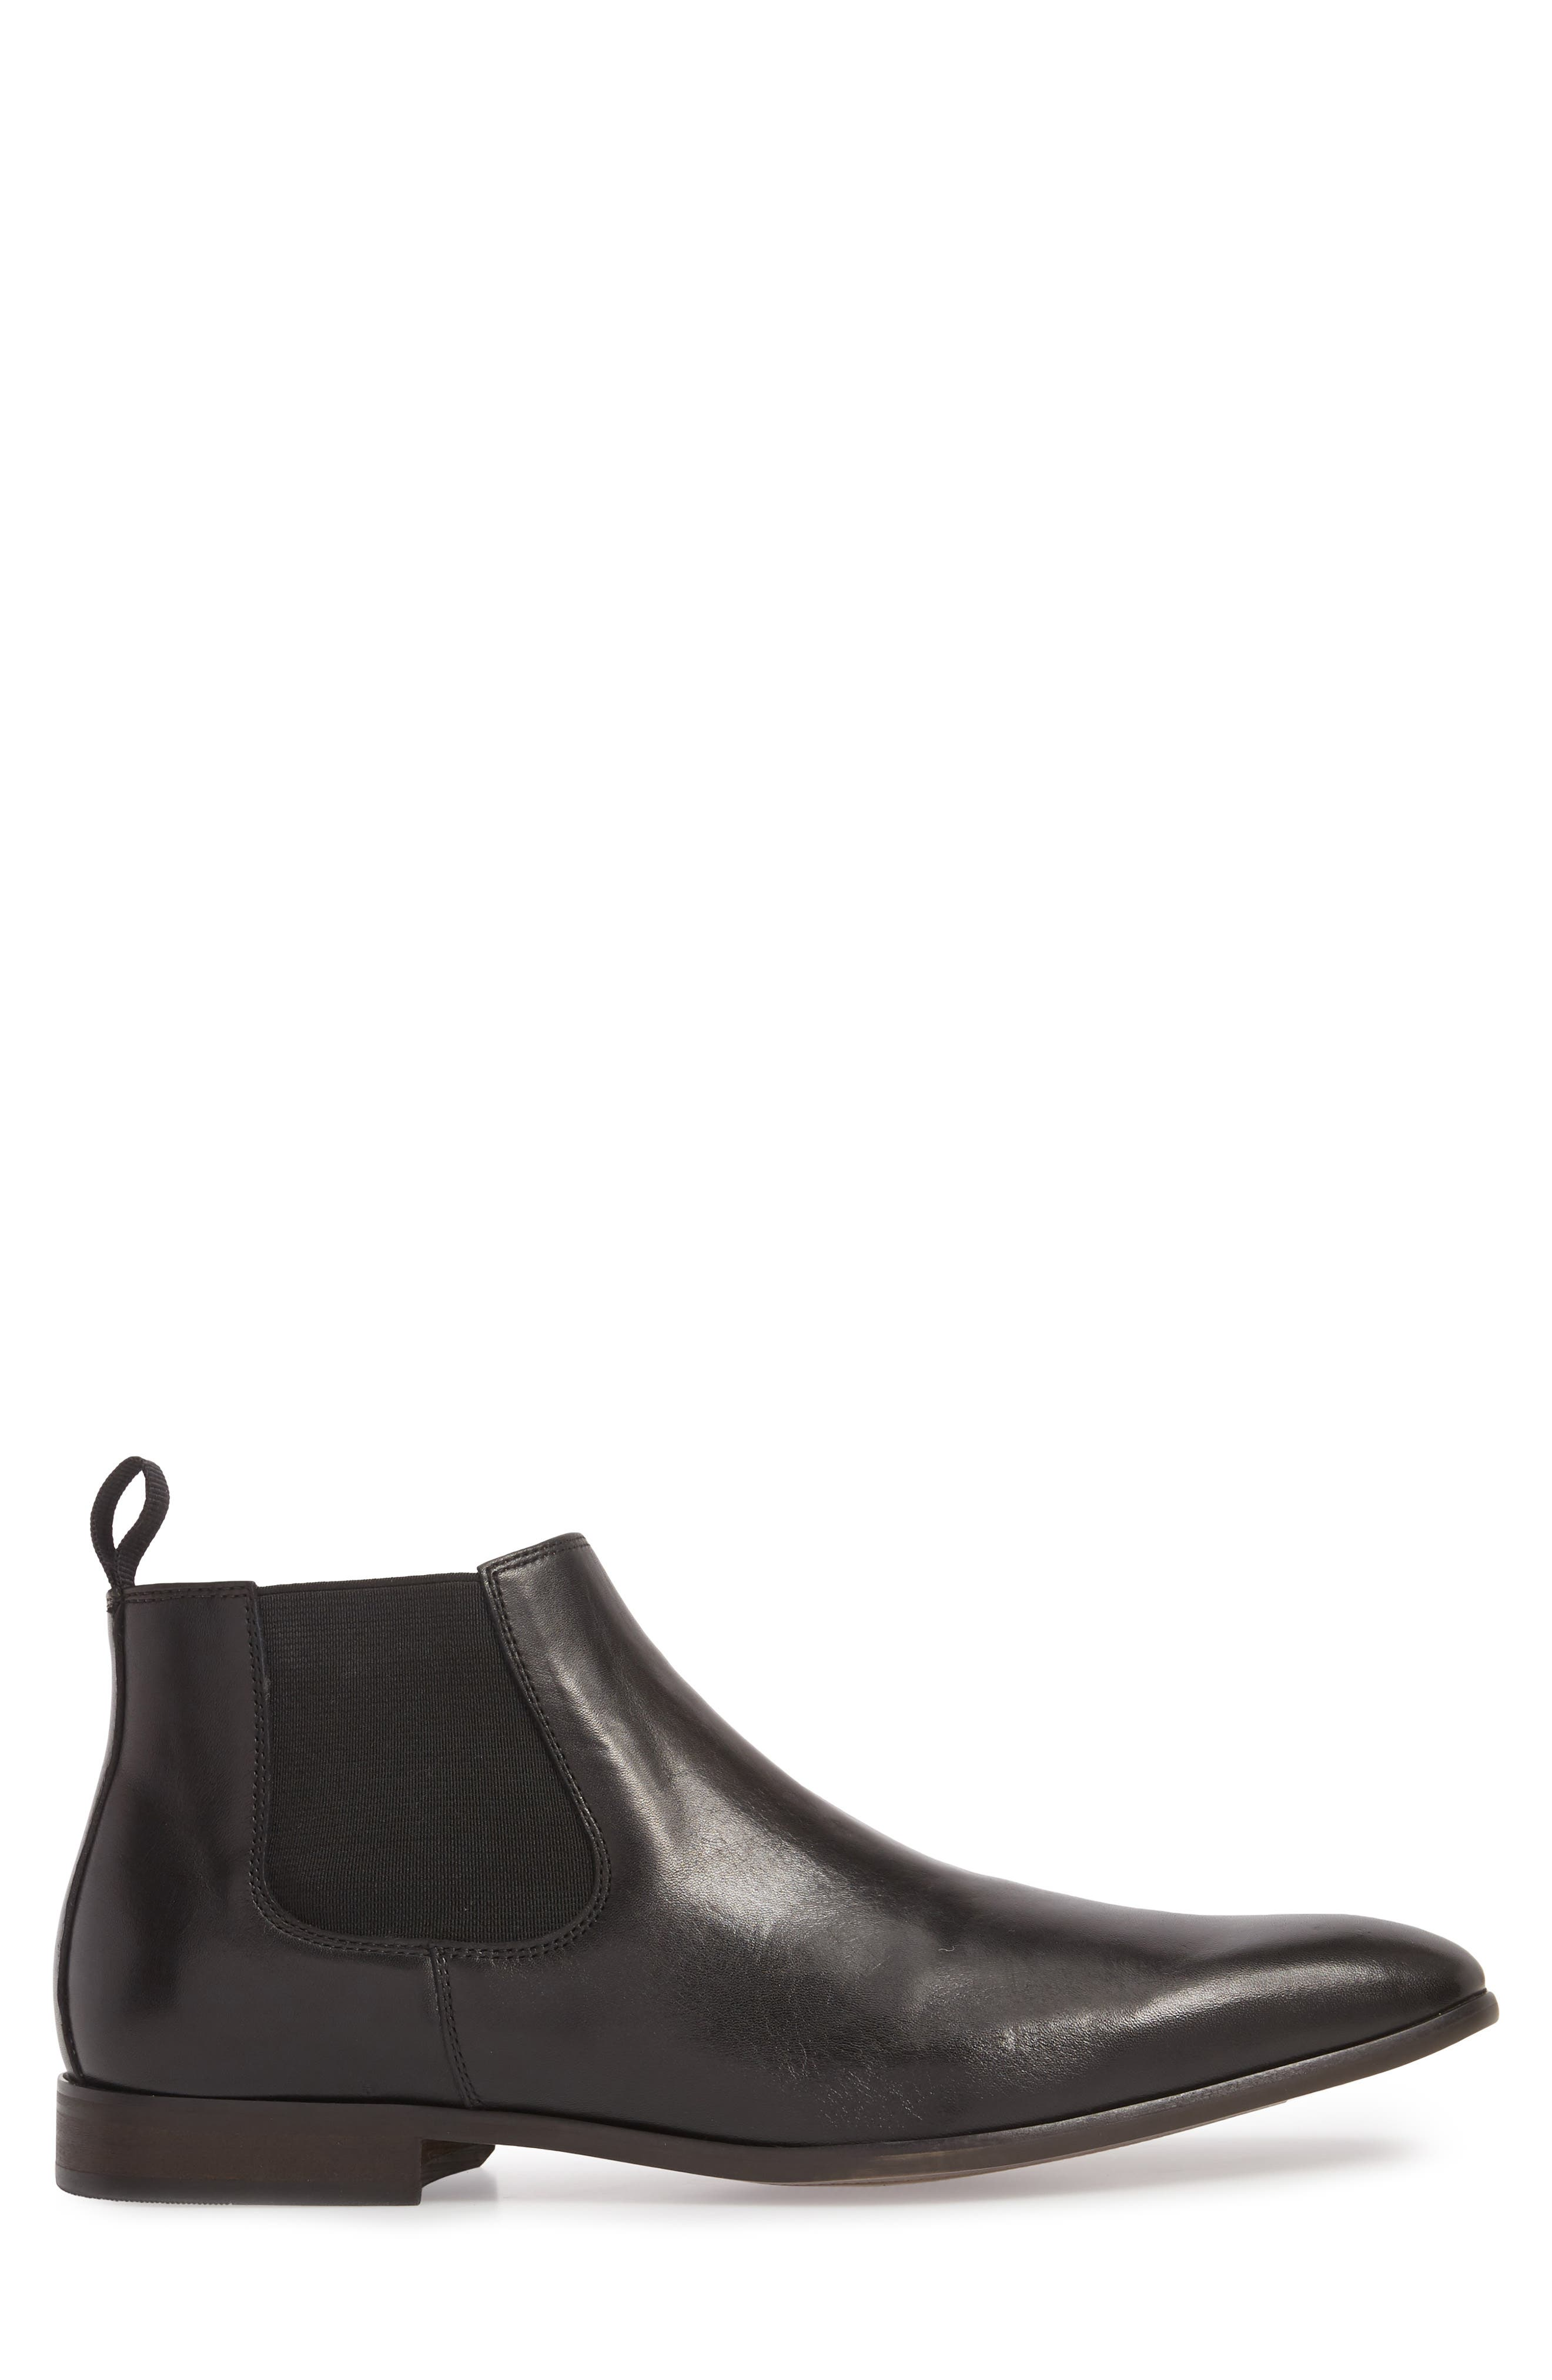 Edward Chelsea Boot,                             Alternate thumbnail 3, color,                             BLACK LEATHER